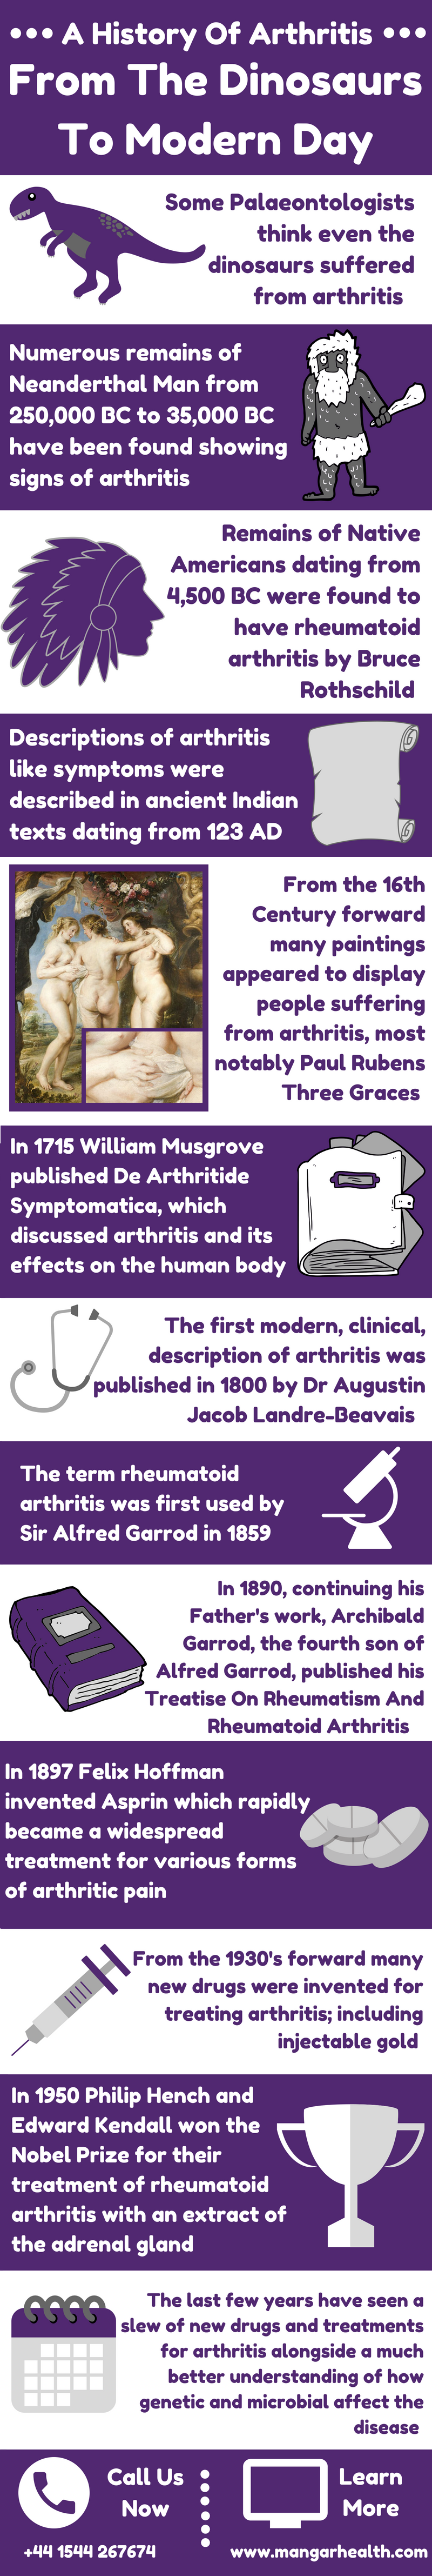 global-history-of-arthritis